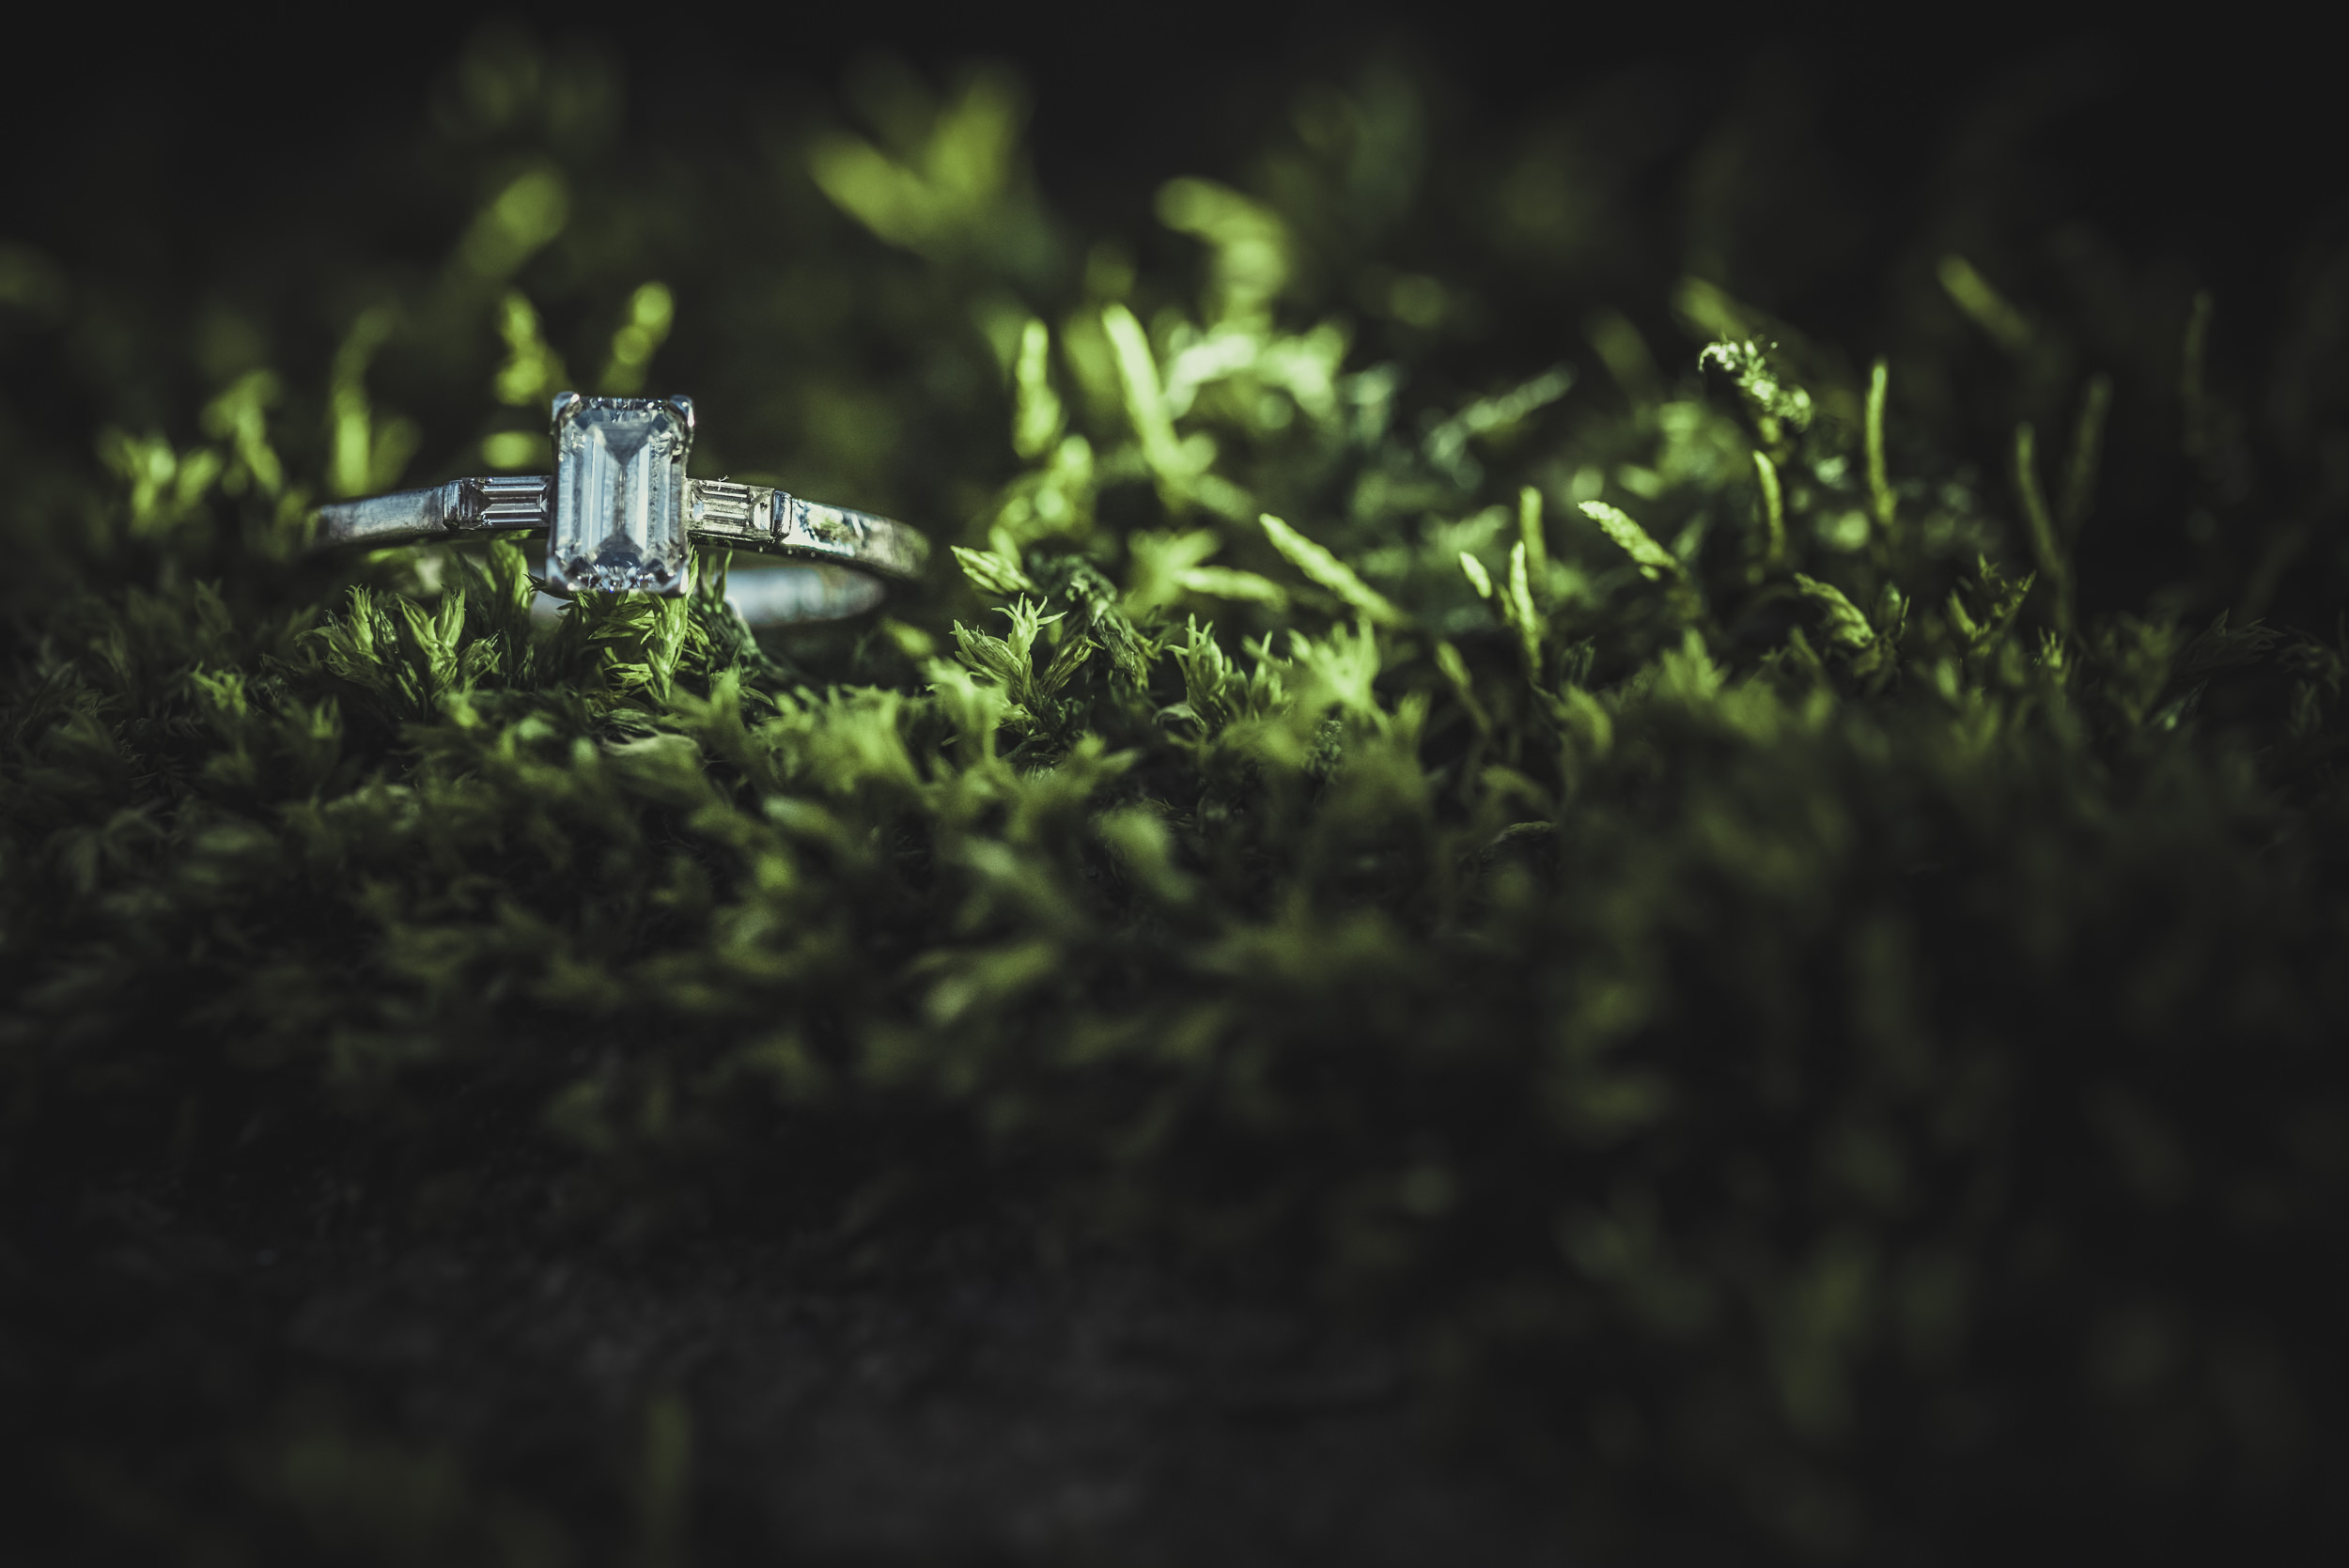 Hannah-and-James-Engagement-Session-Henley-on-Thames-Oxfordshire-Manu-Mendoza-Wedding-Photography-032.jpg